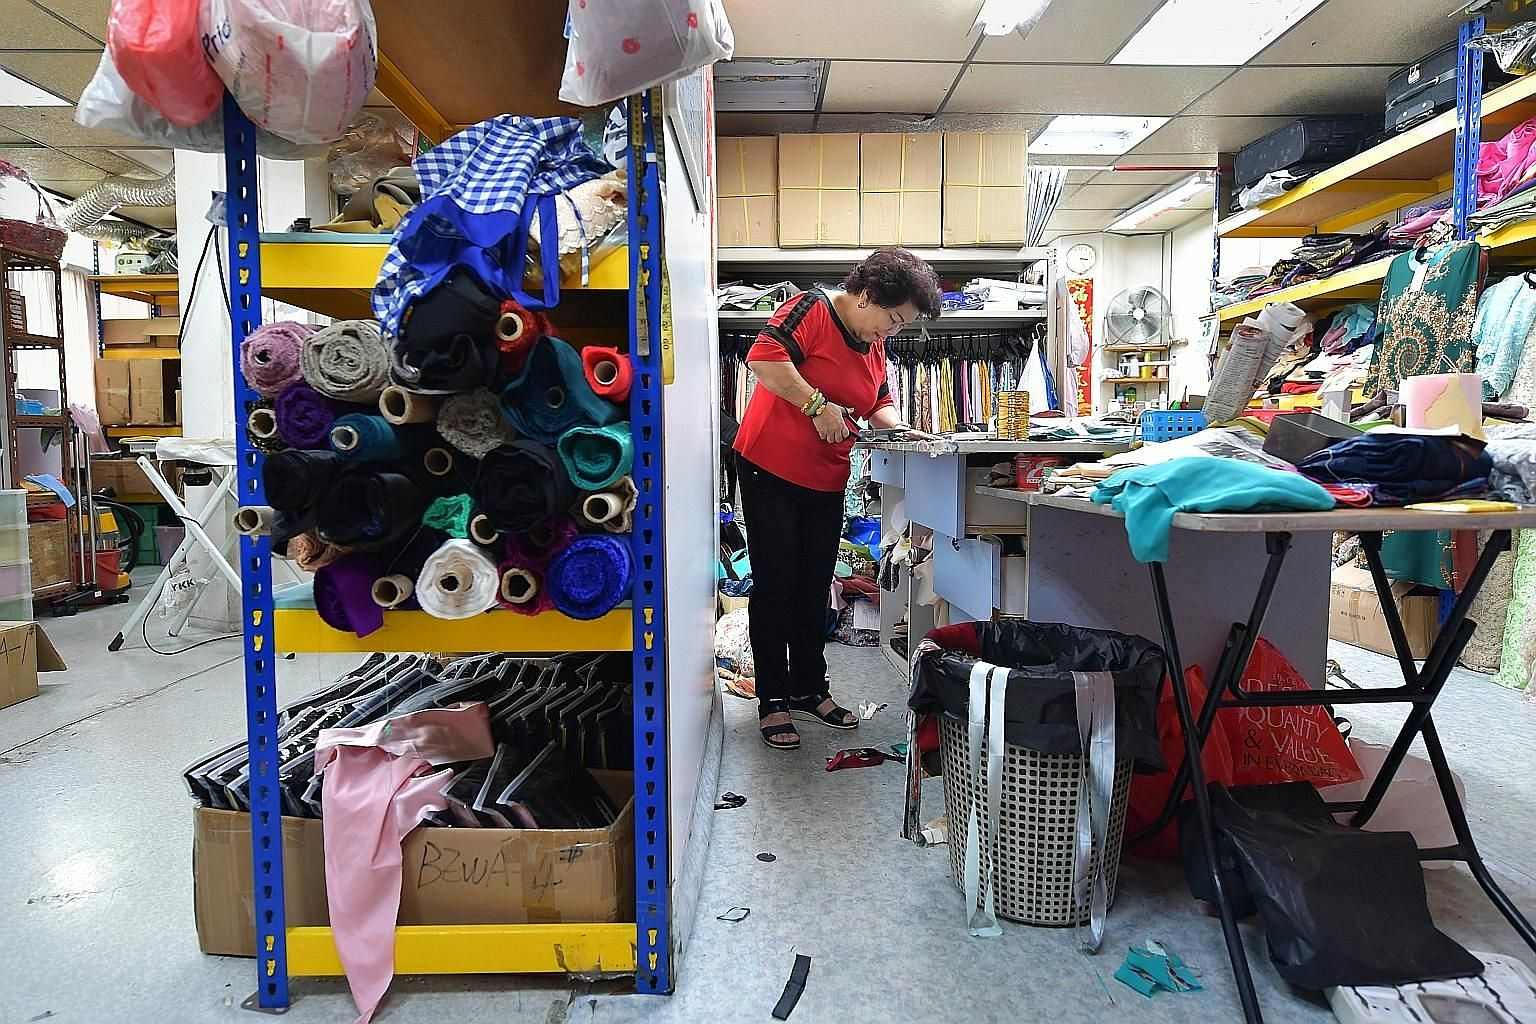 Madam Lie Hong Haw founded Bewa Enterprise in Joo Chiat Complex in 1993 with her husband. The shop is known for ready-made and customised traditional Malay costumes such as baju kurung and baju Pahang.